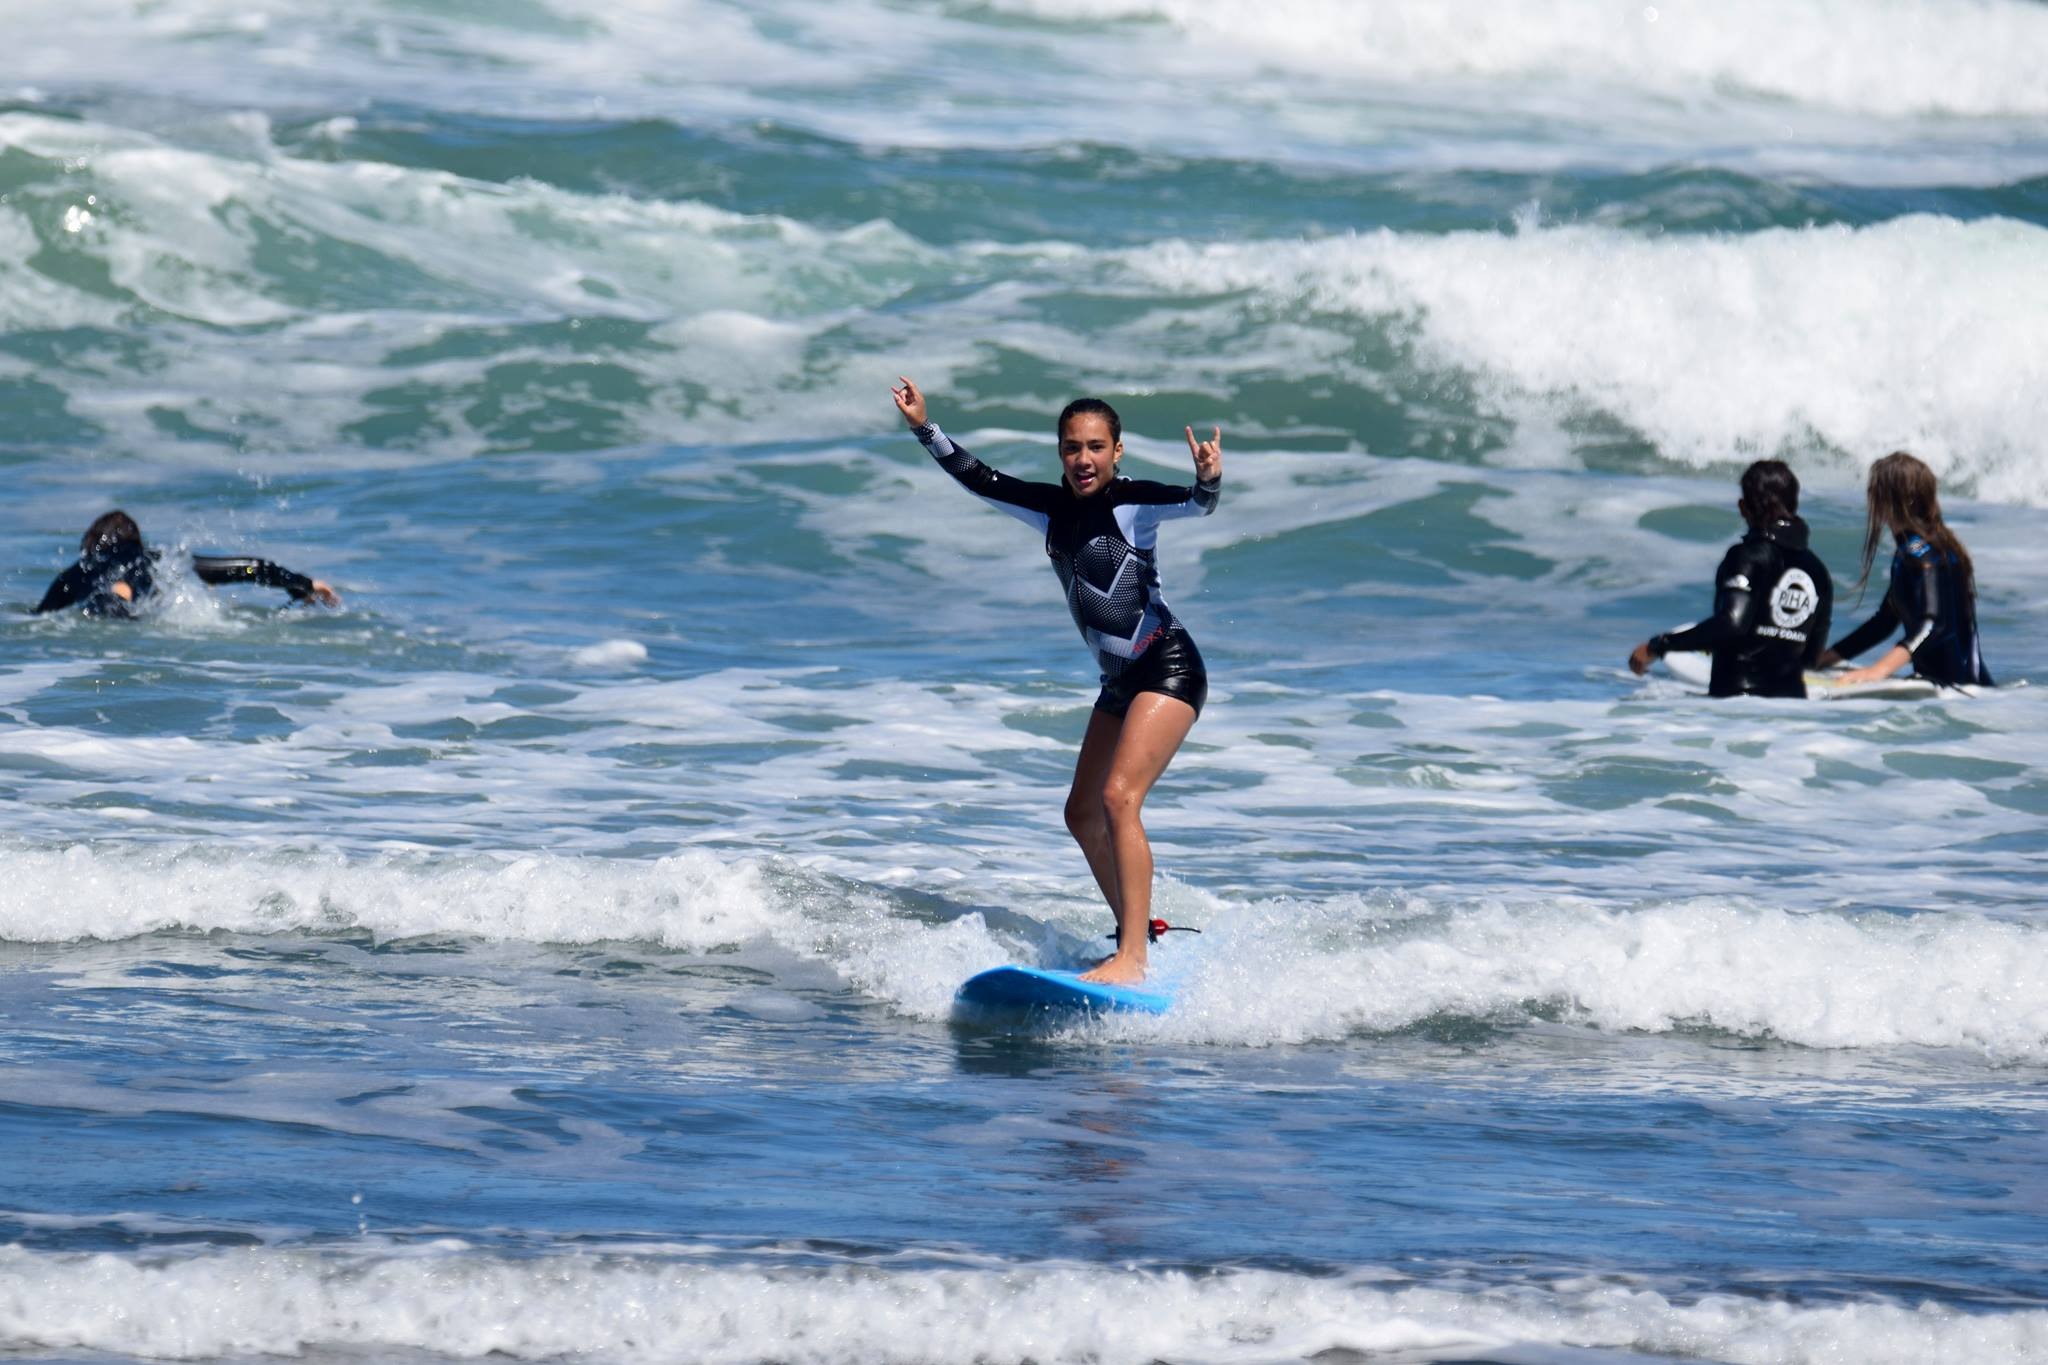 90-Minute Learn to Surf Group Lesson for One Person incl. Equipment Hire - Options for Two People & Private Lessons